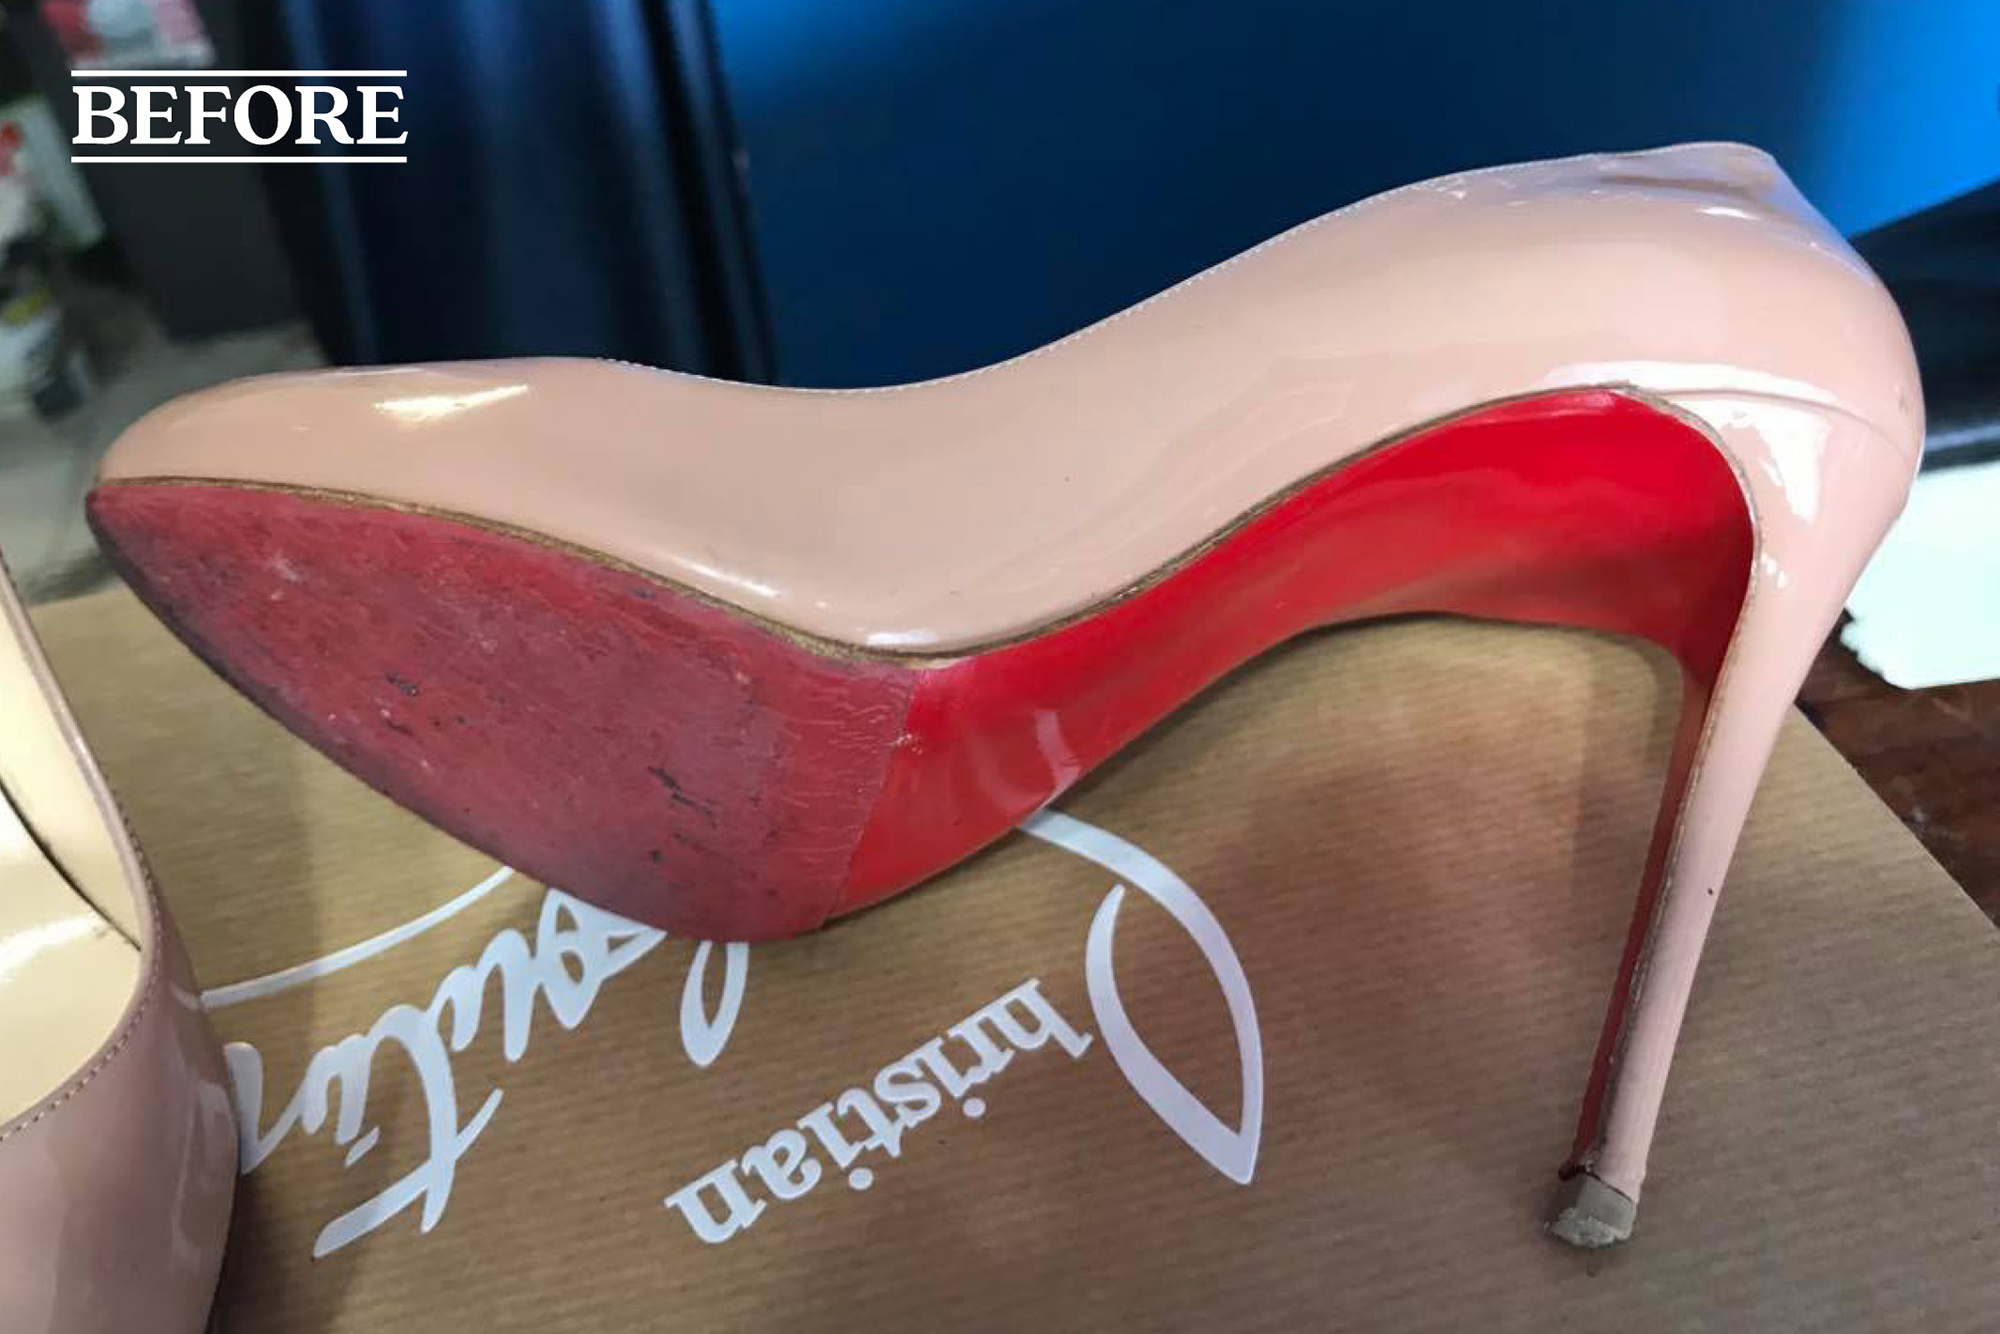 Christian Louboutin protective sole